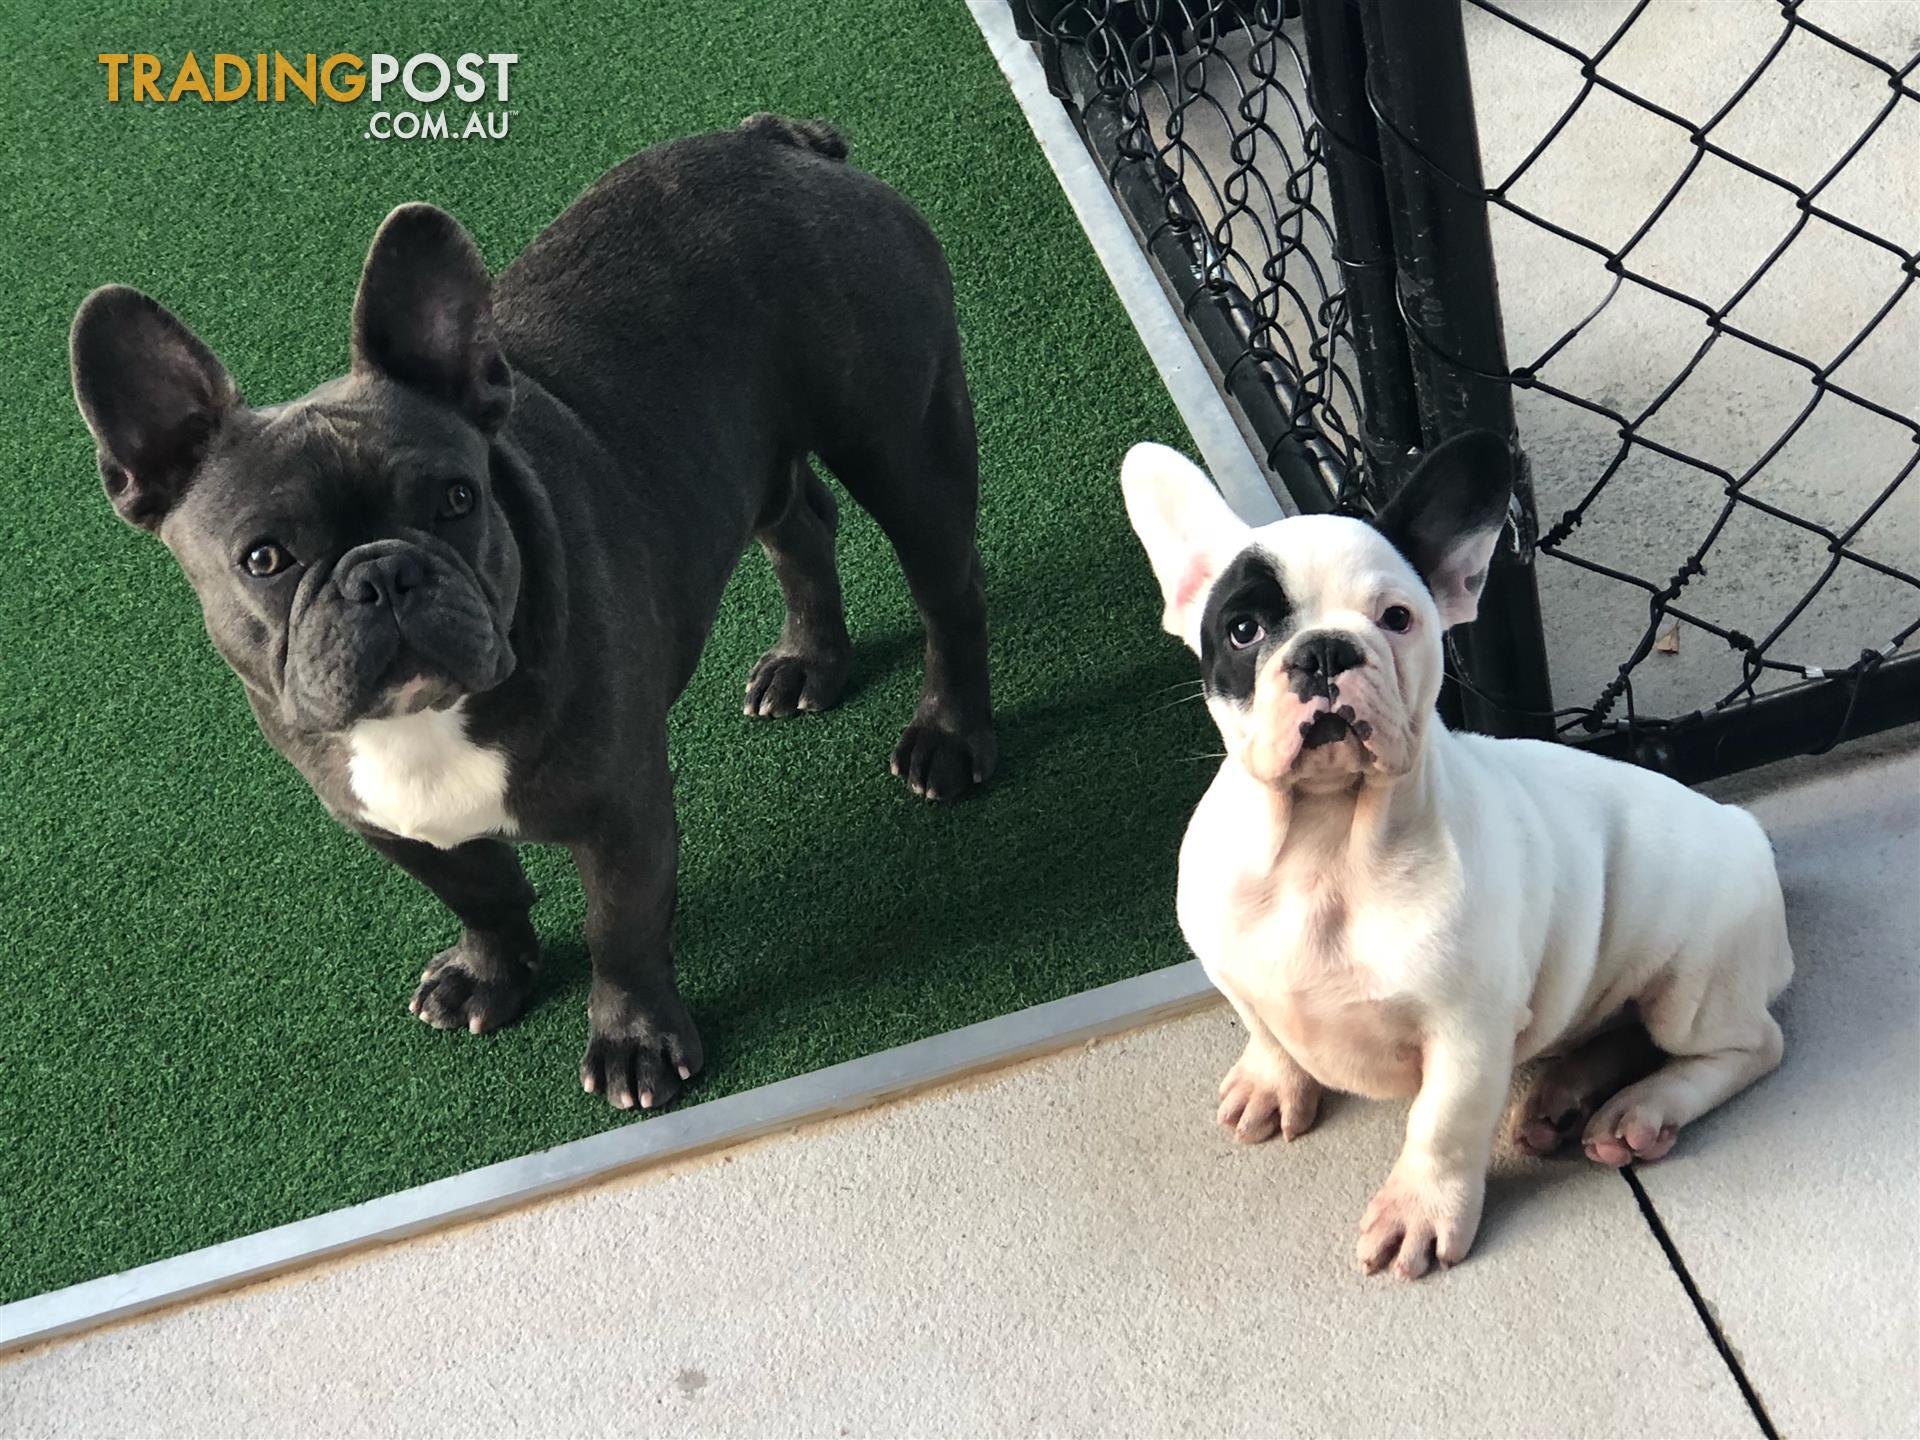 French bulldog pups for sale in oxenford qld french bulldog pups send message solutioingenieria Choice Image